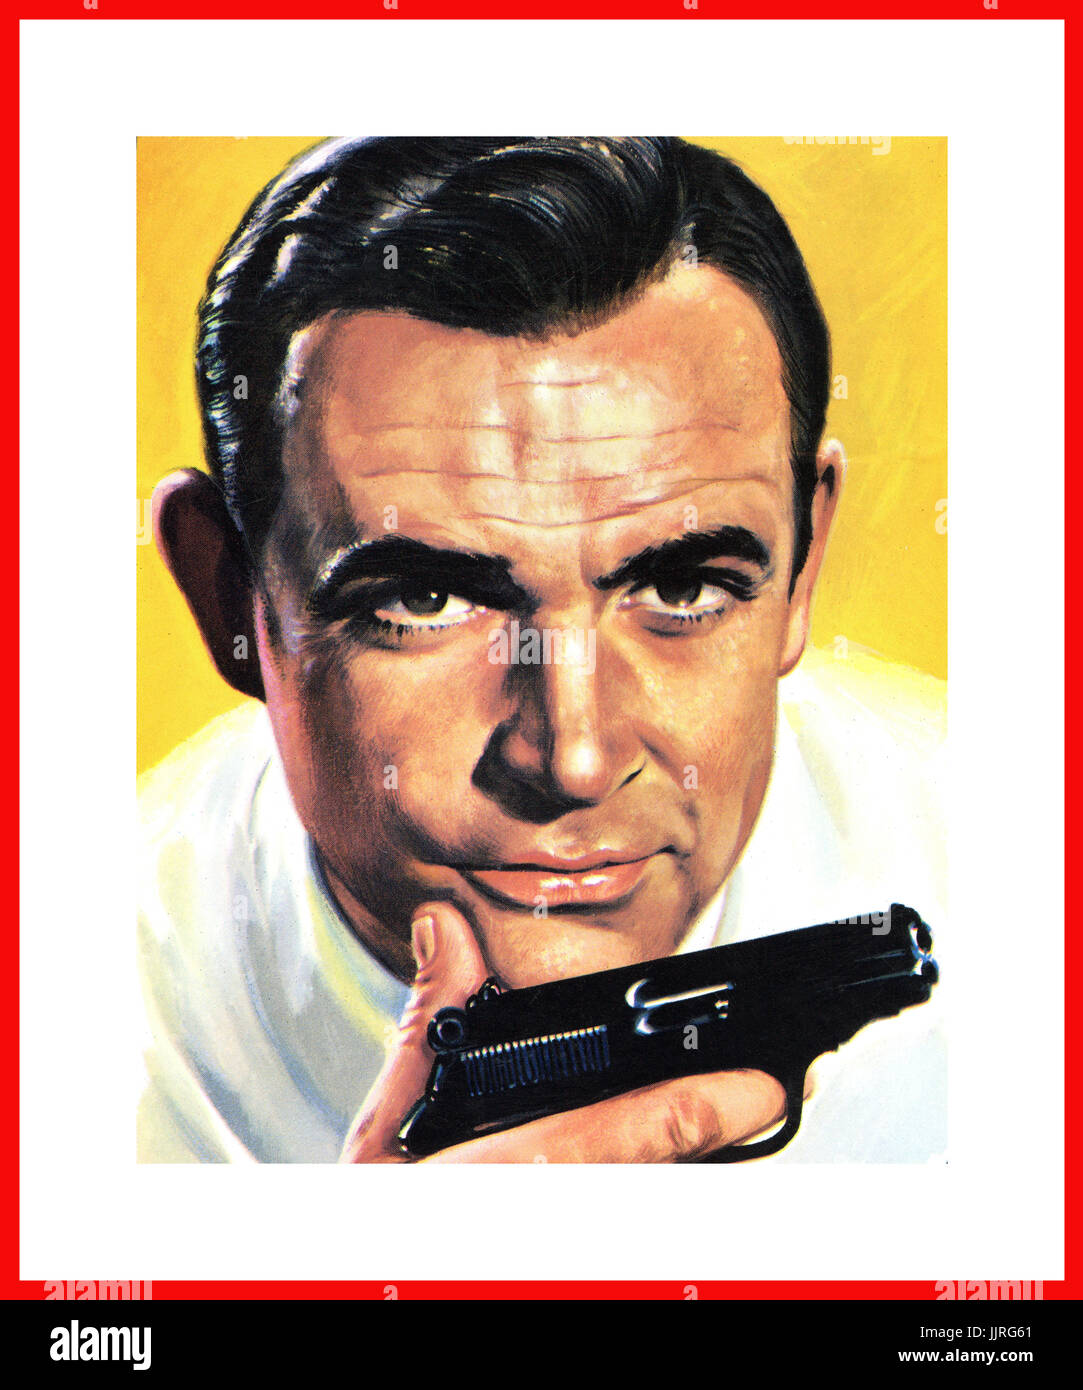 1960 S James Bond Walther Ppk Pistol Portrait Photo Illustration Stock Photo Alamy